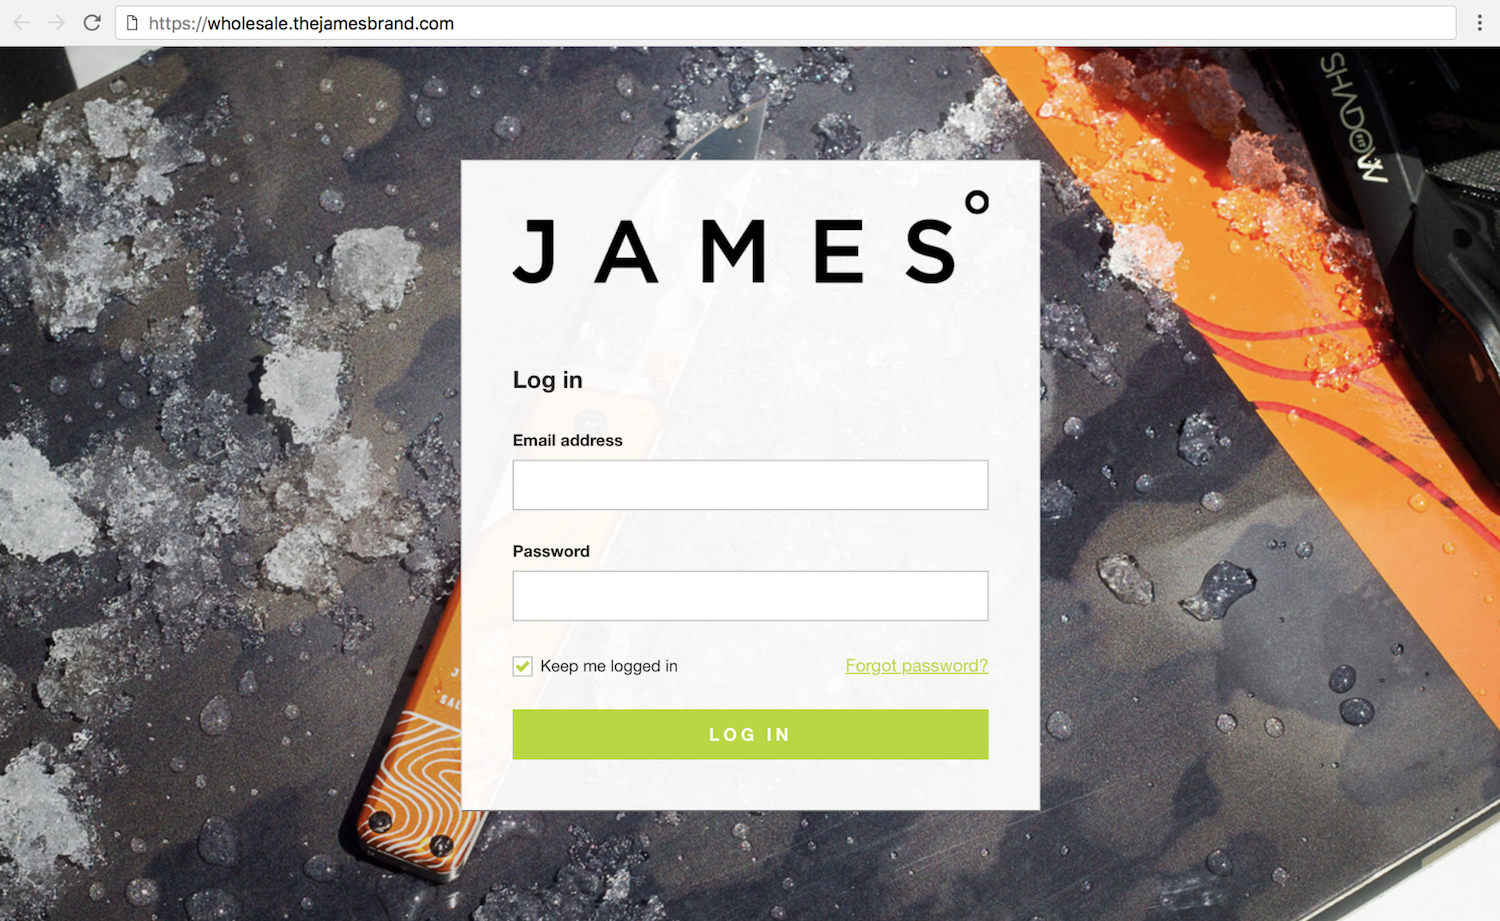 The James Brand's wholesale ecommerce storefront with branded URL